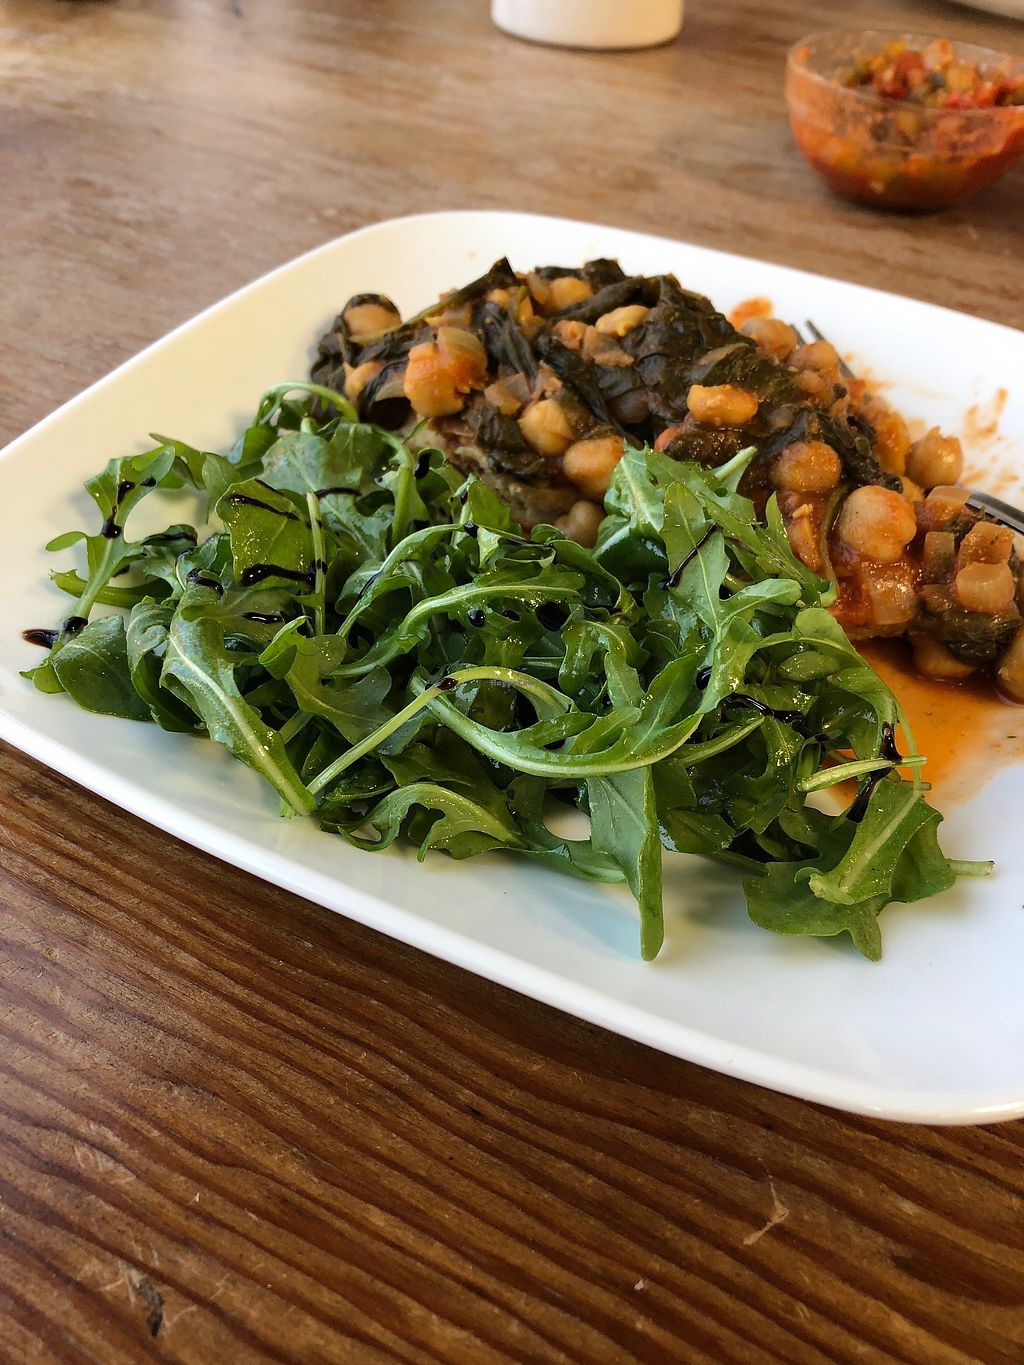 """Photo of Ammo Brewing  by <a href=""""/members/profile/EmmaBelz"""">EmmaBelz</a> <br/>Brunch Chickpea Curry w/ dressed greens <br/> April 10, 2018  - <a href='/contact/abuse/image/117171/383511'>Report</a>"""